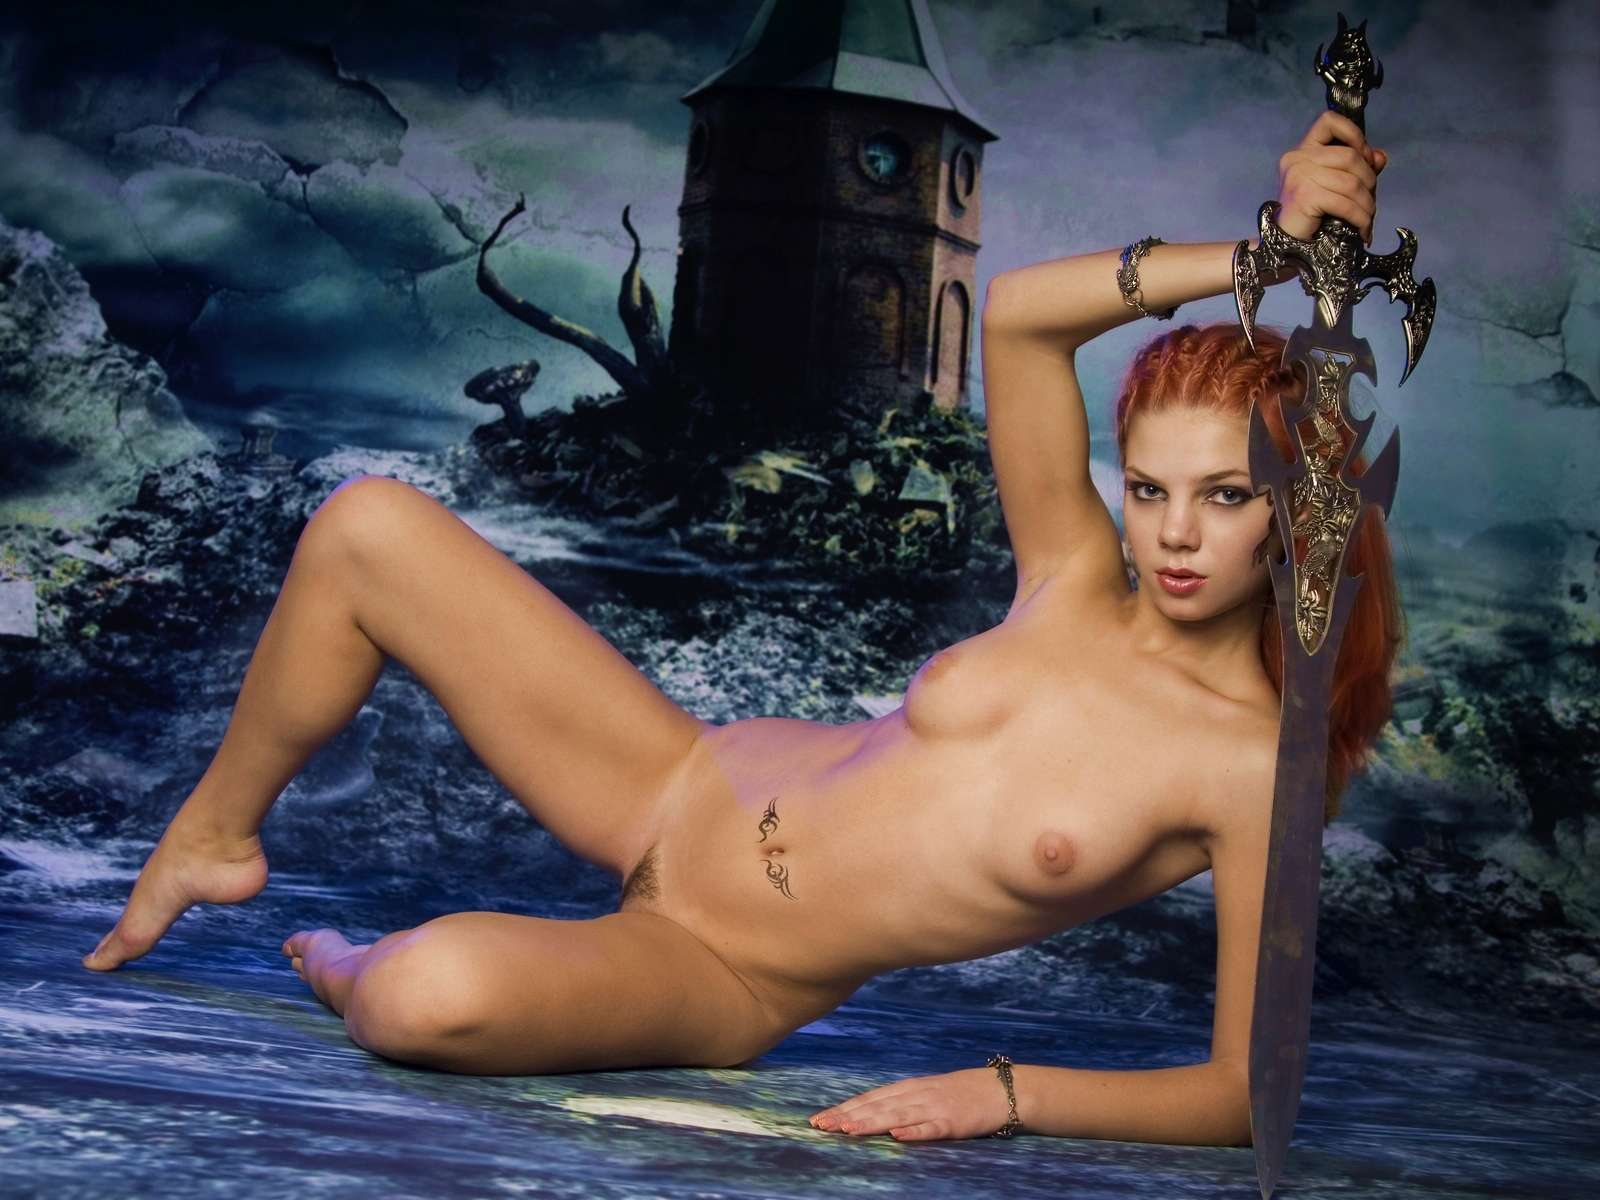 Goblin queen sexy erotic scene